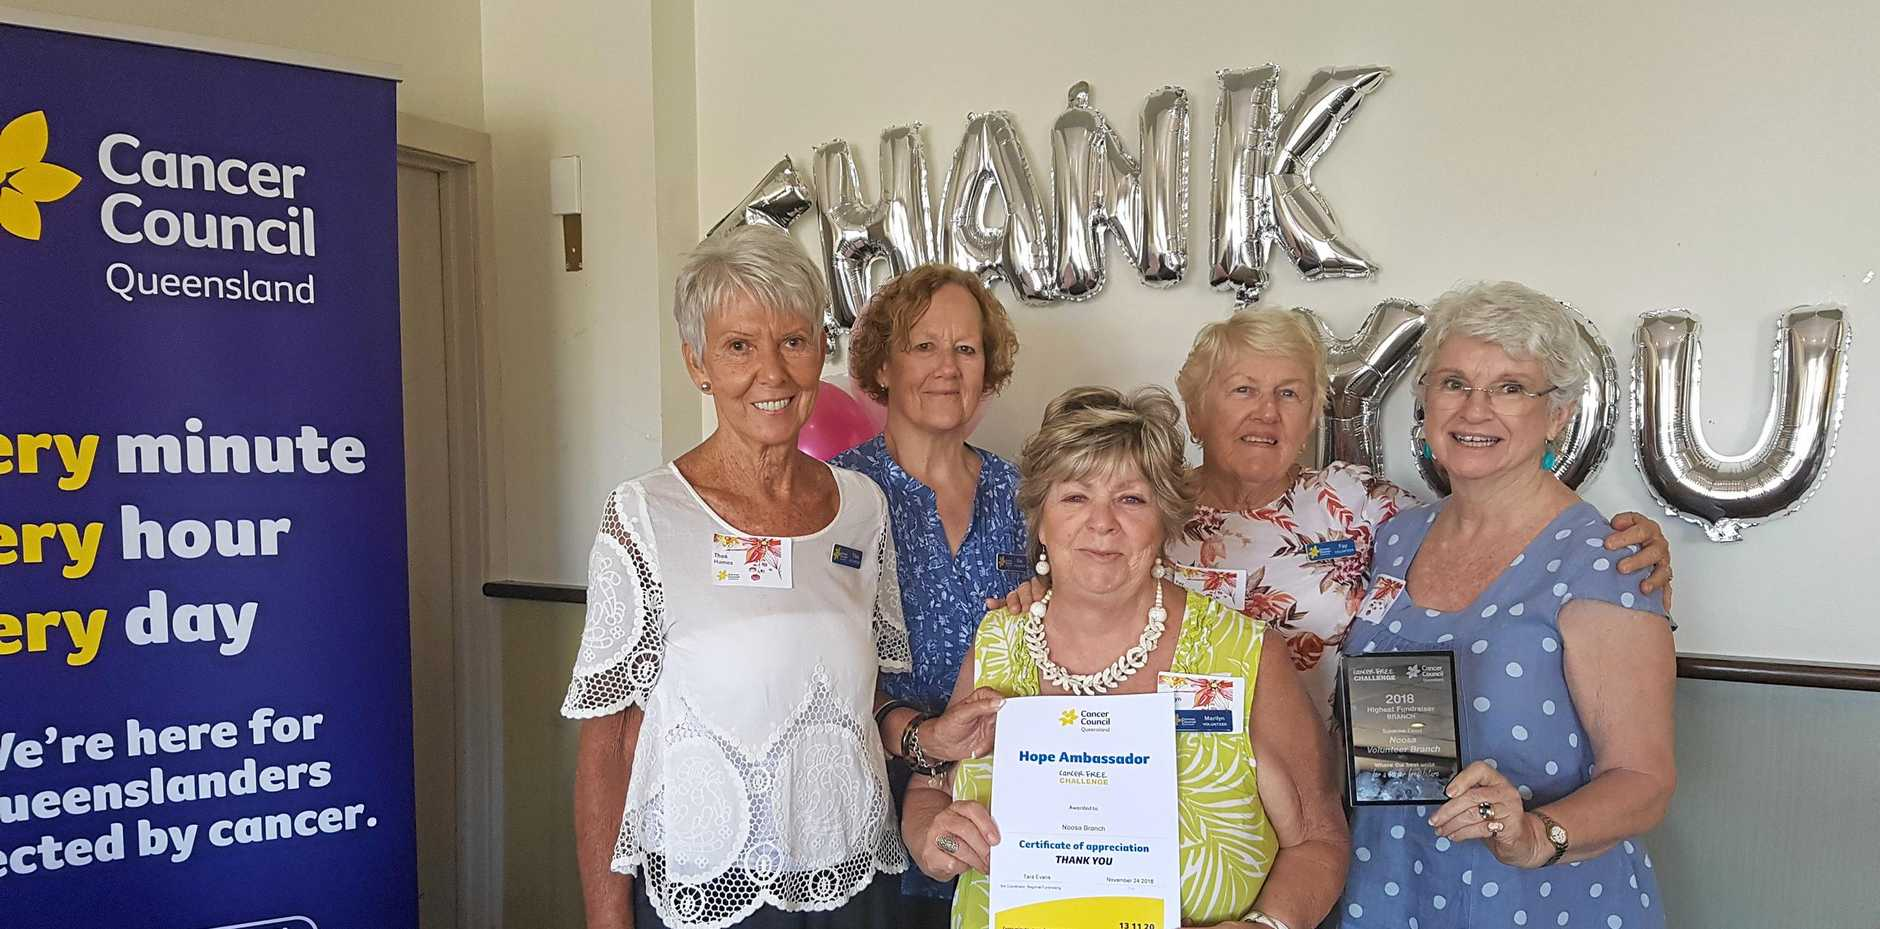 WONDERFUL EFFORT: Cancer Council Queensland Noosa Branch's Thea Holmes, Ena Murphy, Marilyn Kerr, Fay Hewson and Kathi Gow.